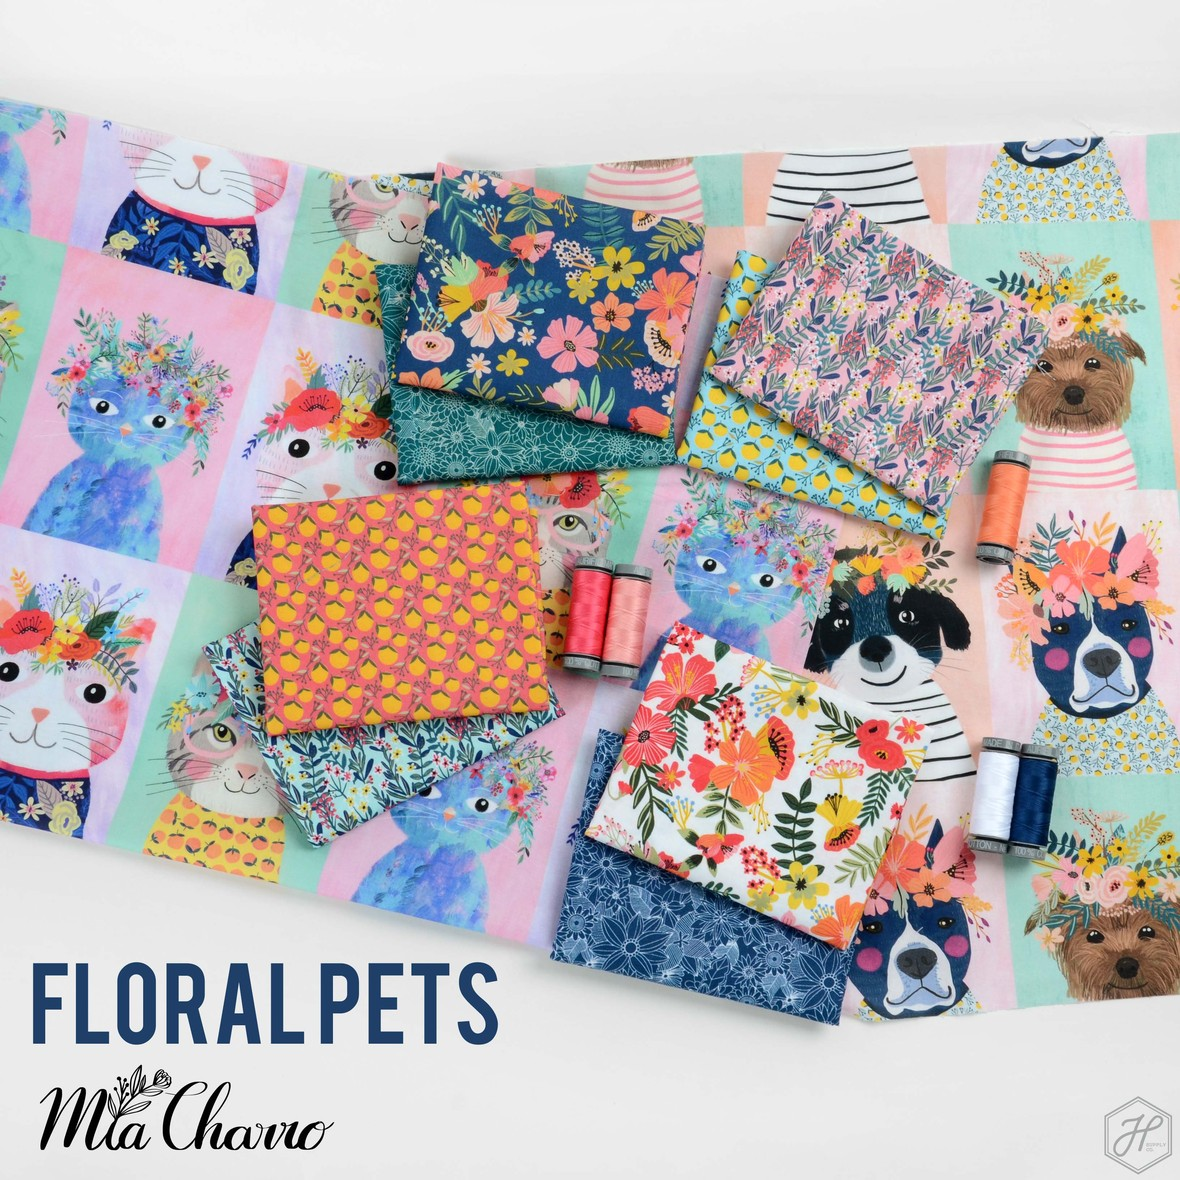 Floral Pets Fabric Poster Mia Charro at Hawthorne Supply Co